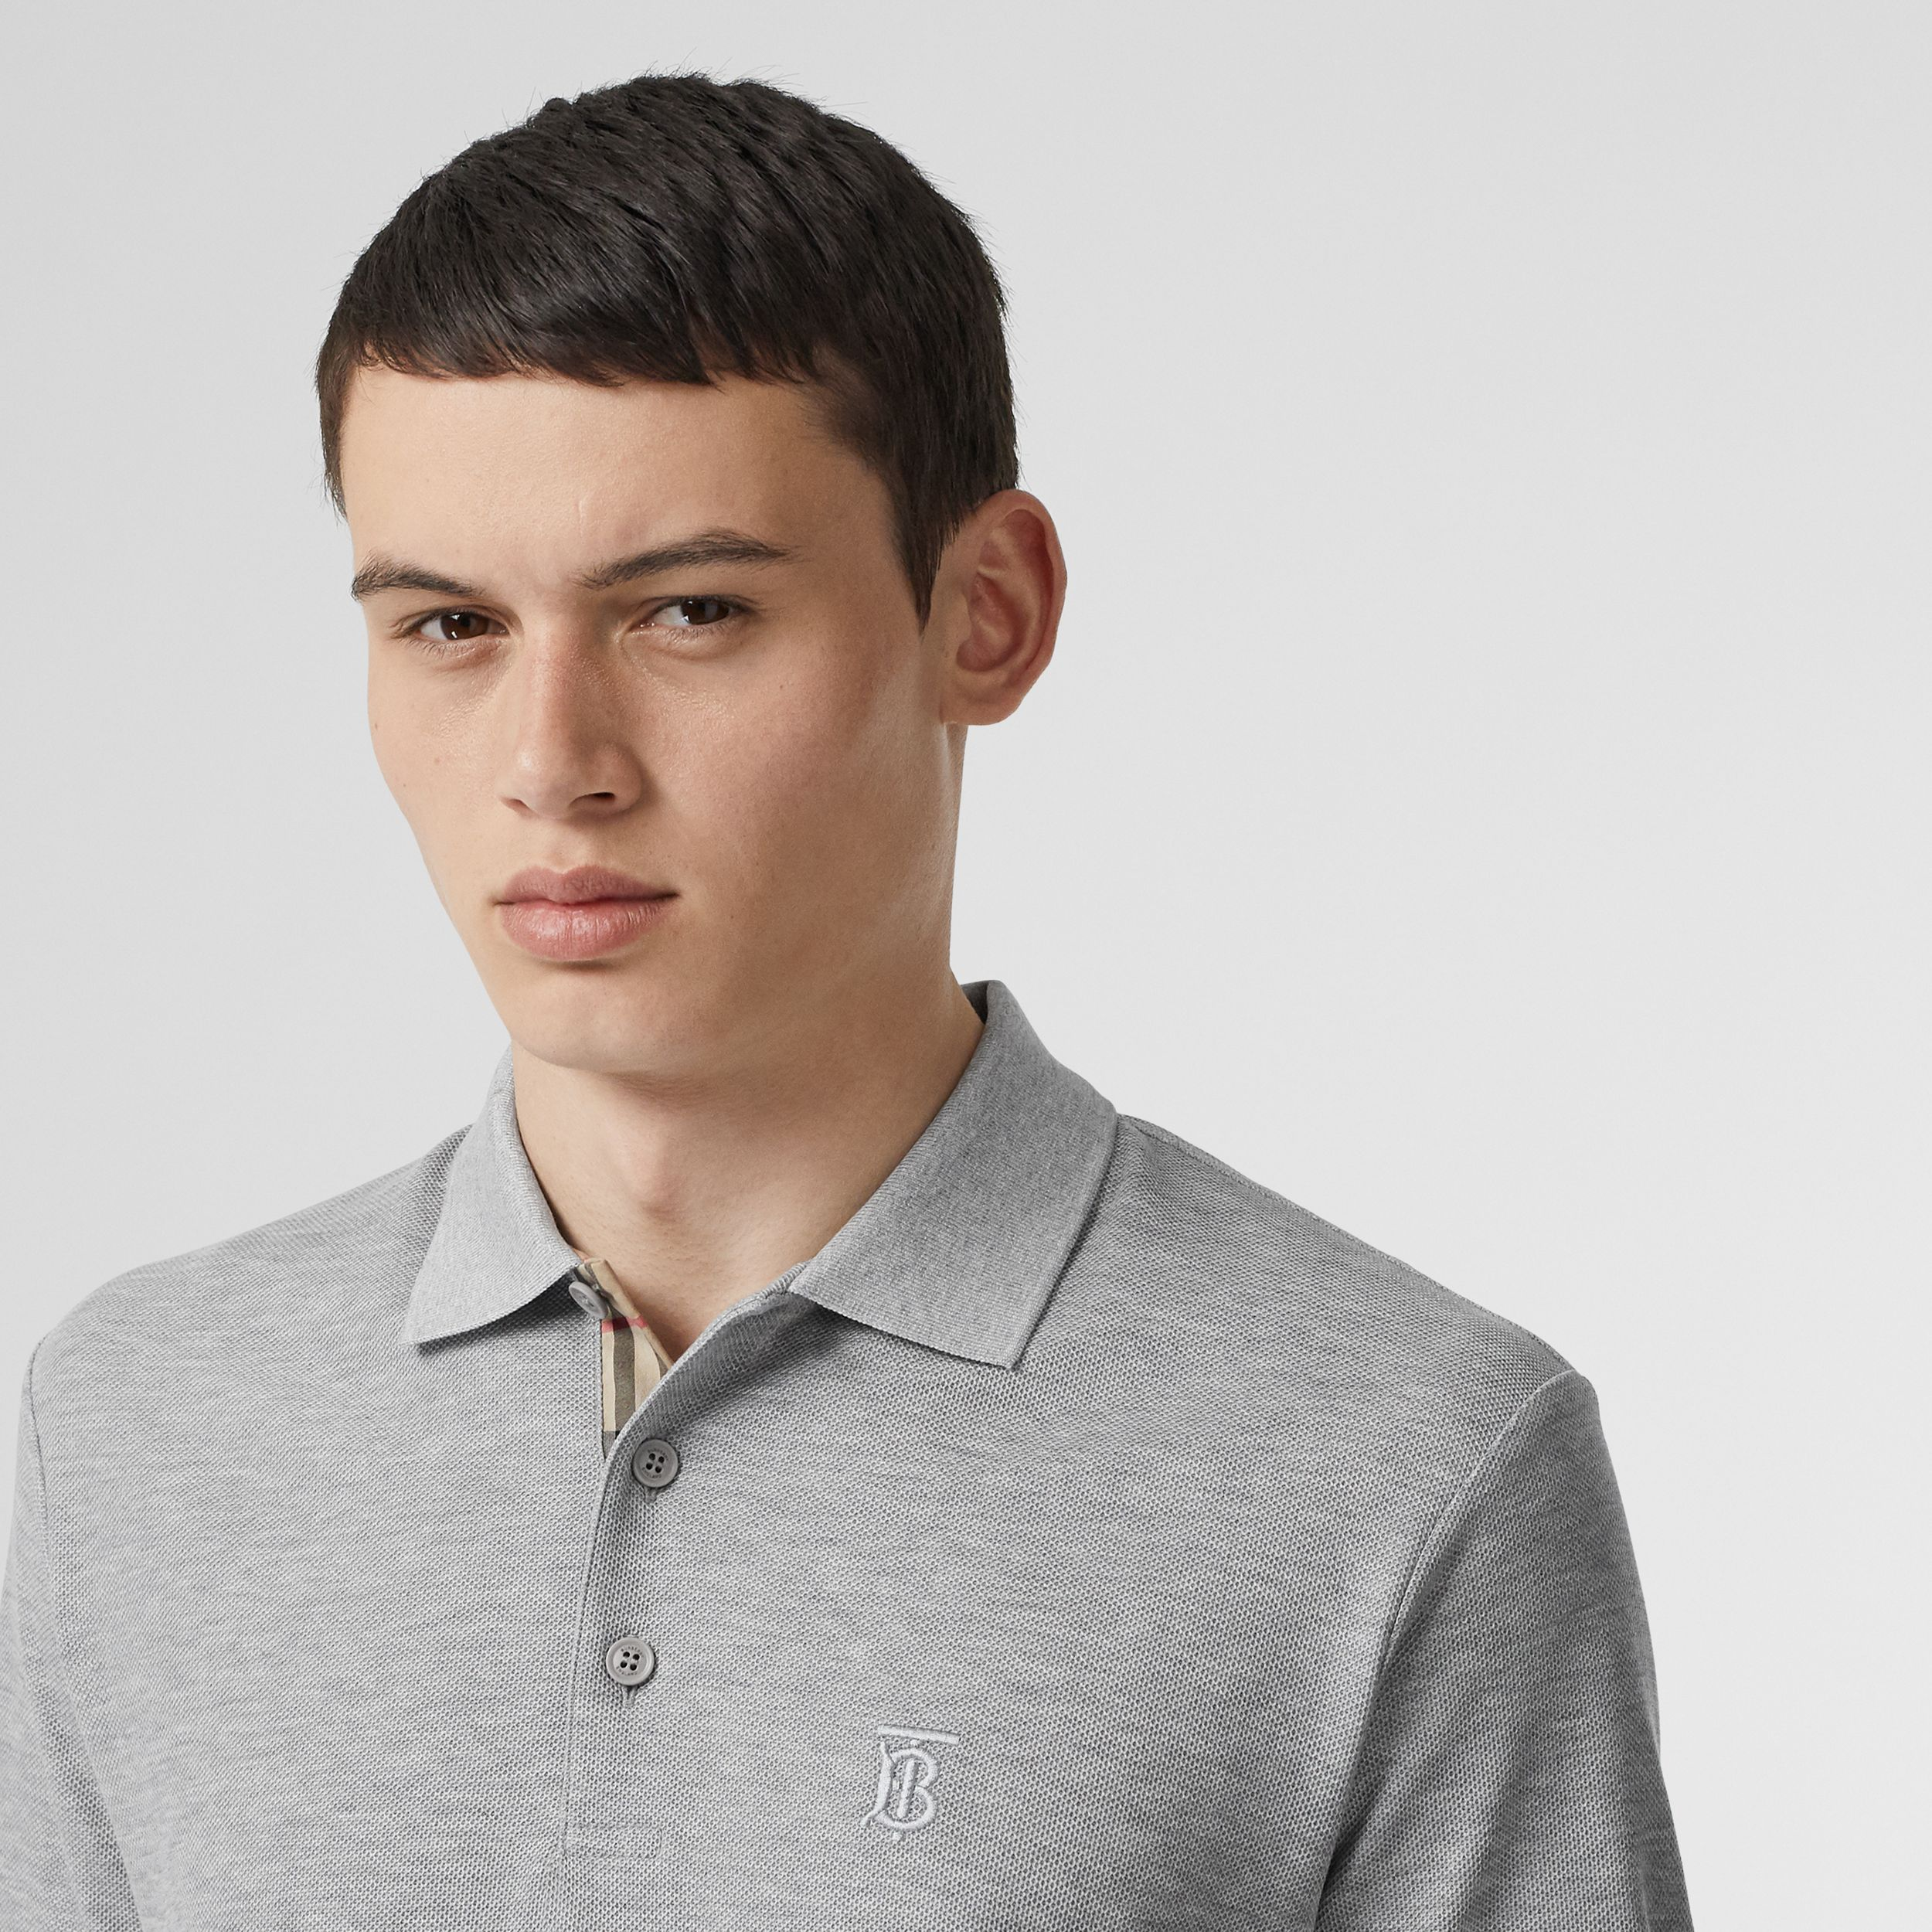 Monogram Motif Cotton Piqué Polo Shirt in Pale Grey Melange - Men | Burberry Australia - 2